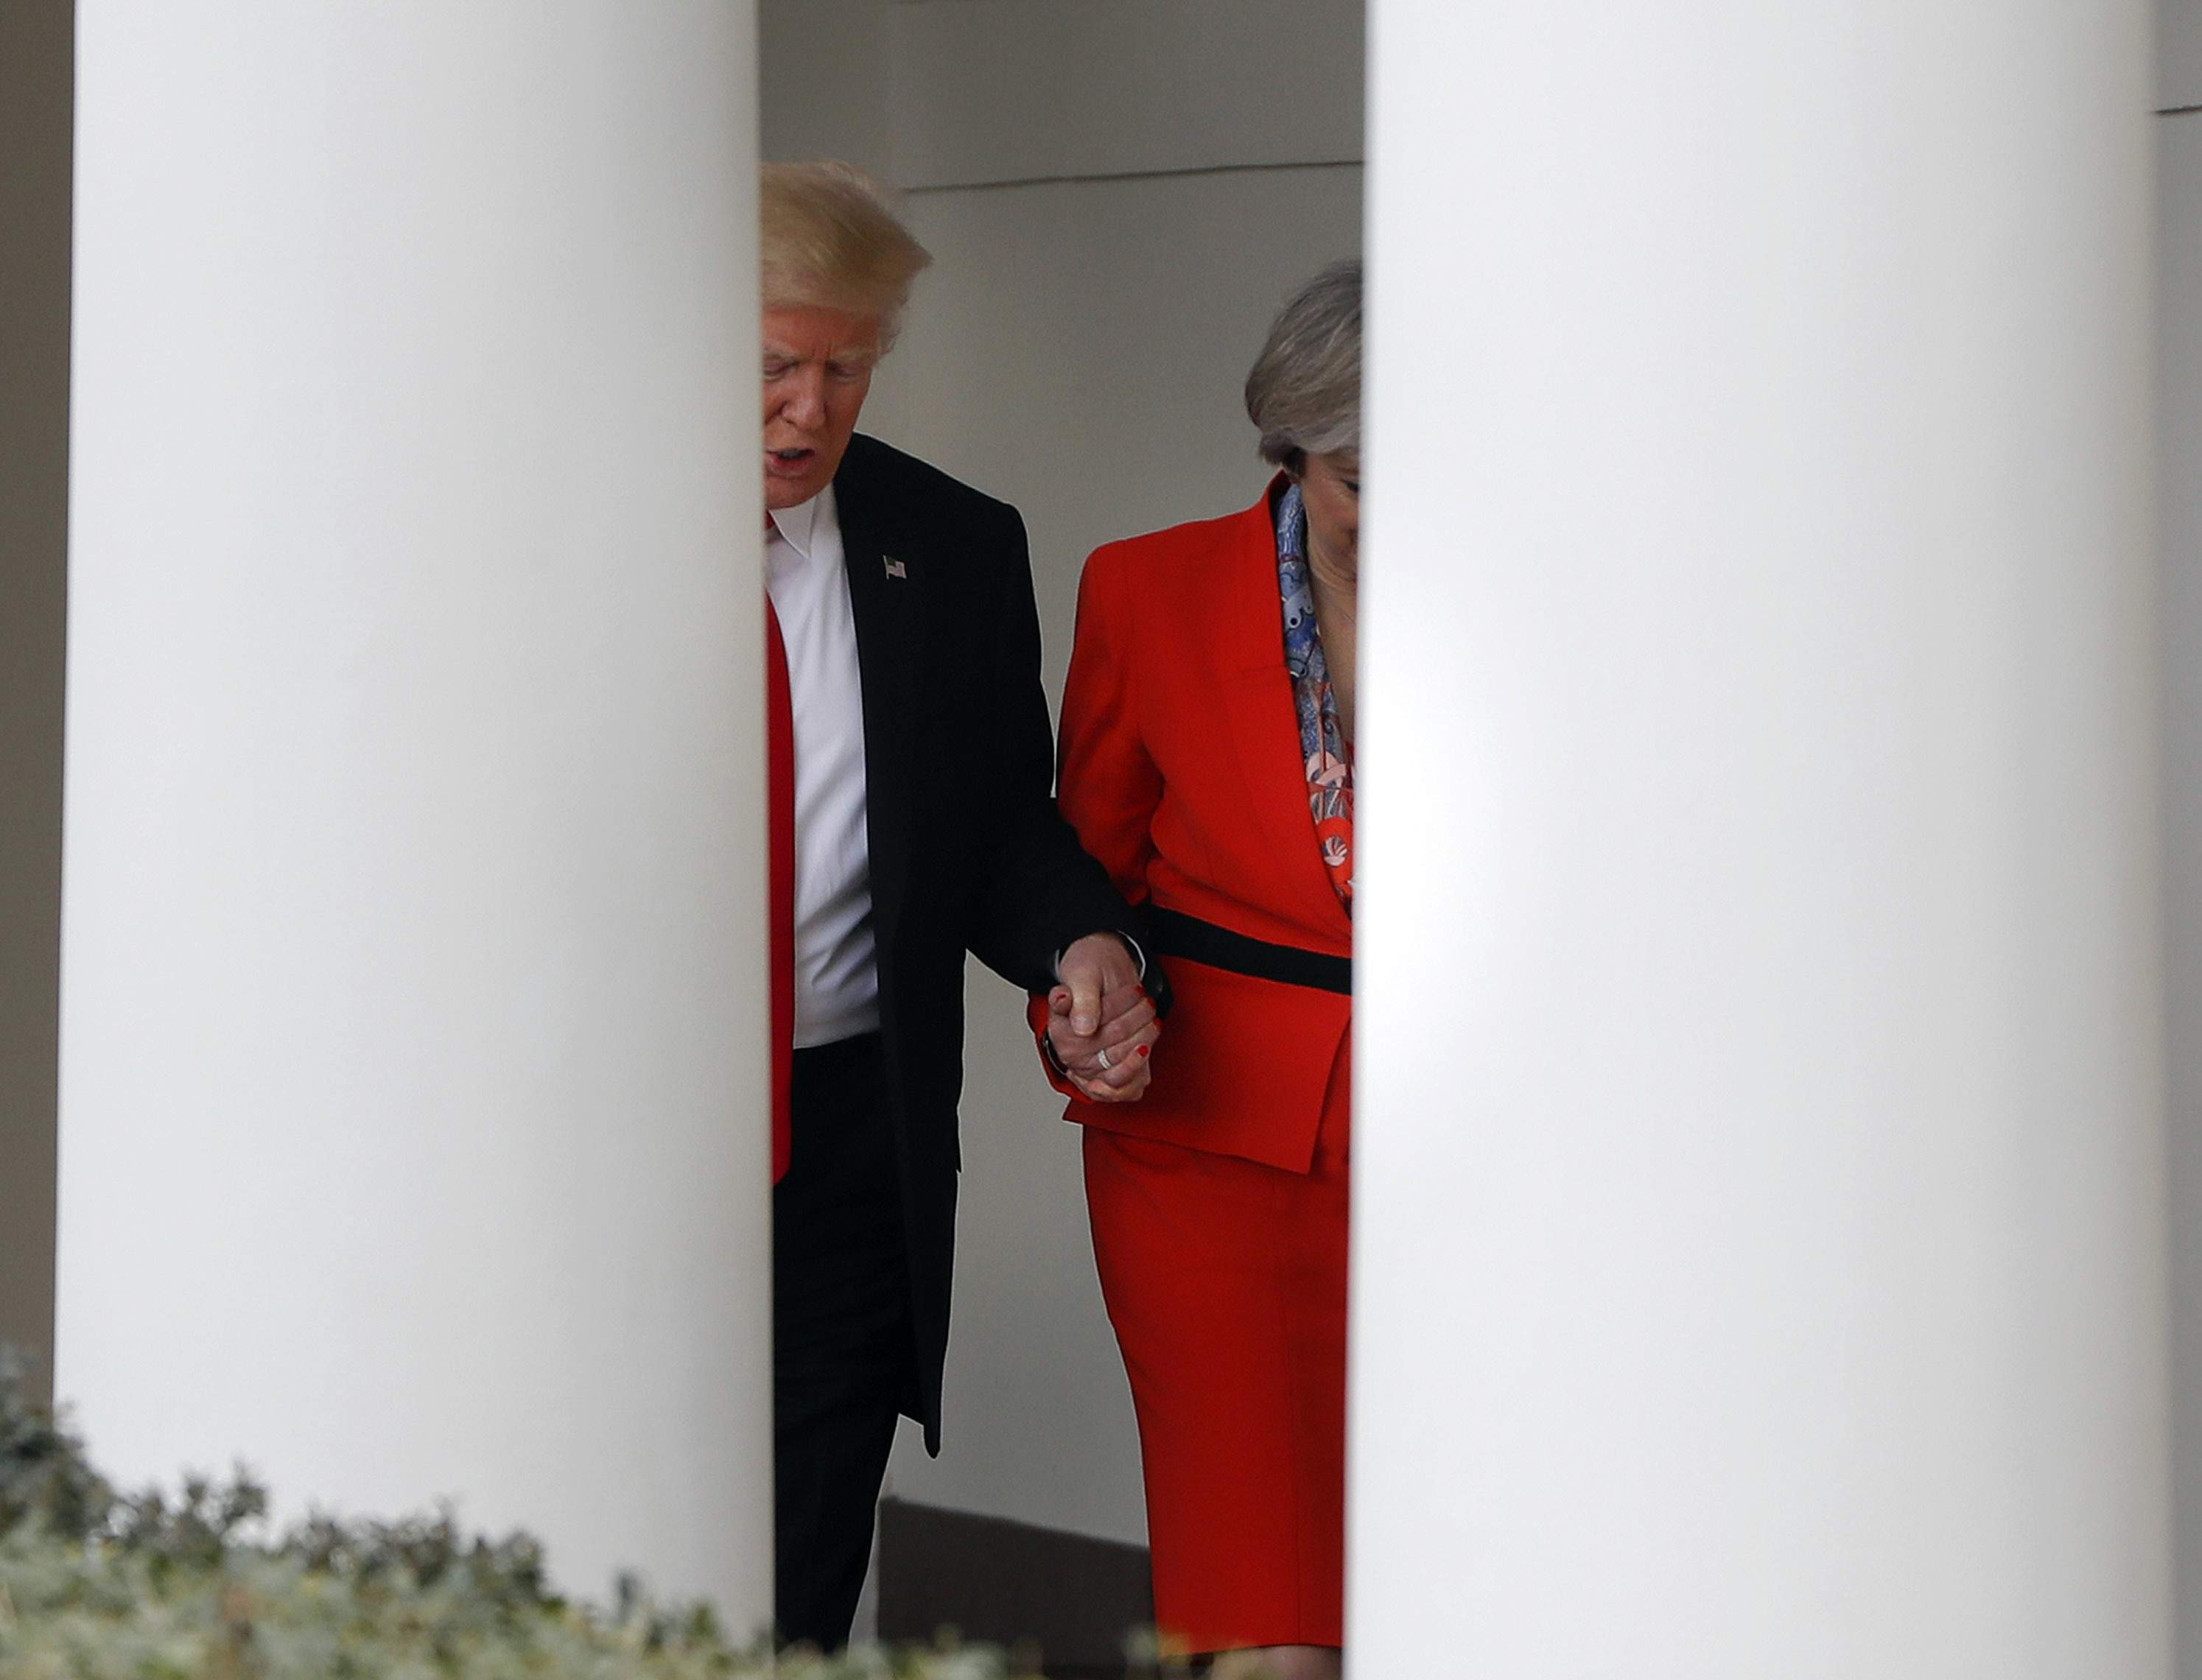 DAY 8 - In this Jan. 27, 2017, file photo, President Donald Trump holds British Prime Minister Theresa May's hand as they walk along the colonnade of the White House in Washington. (AP Photo/Pablo Martinez Monsivais, file)